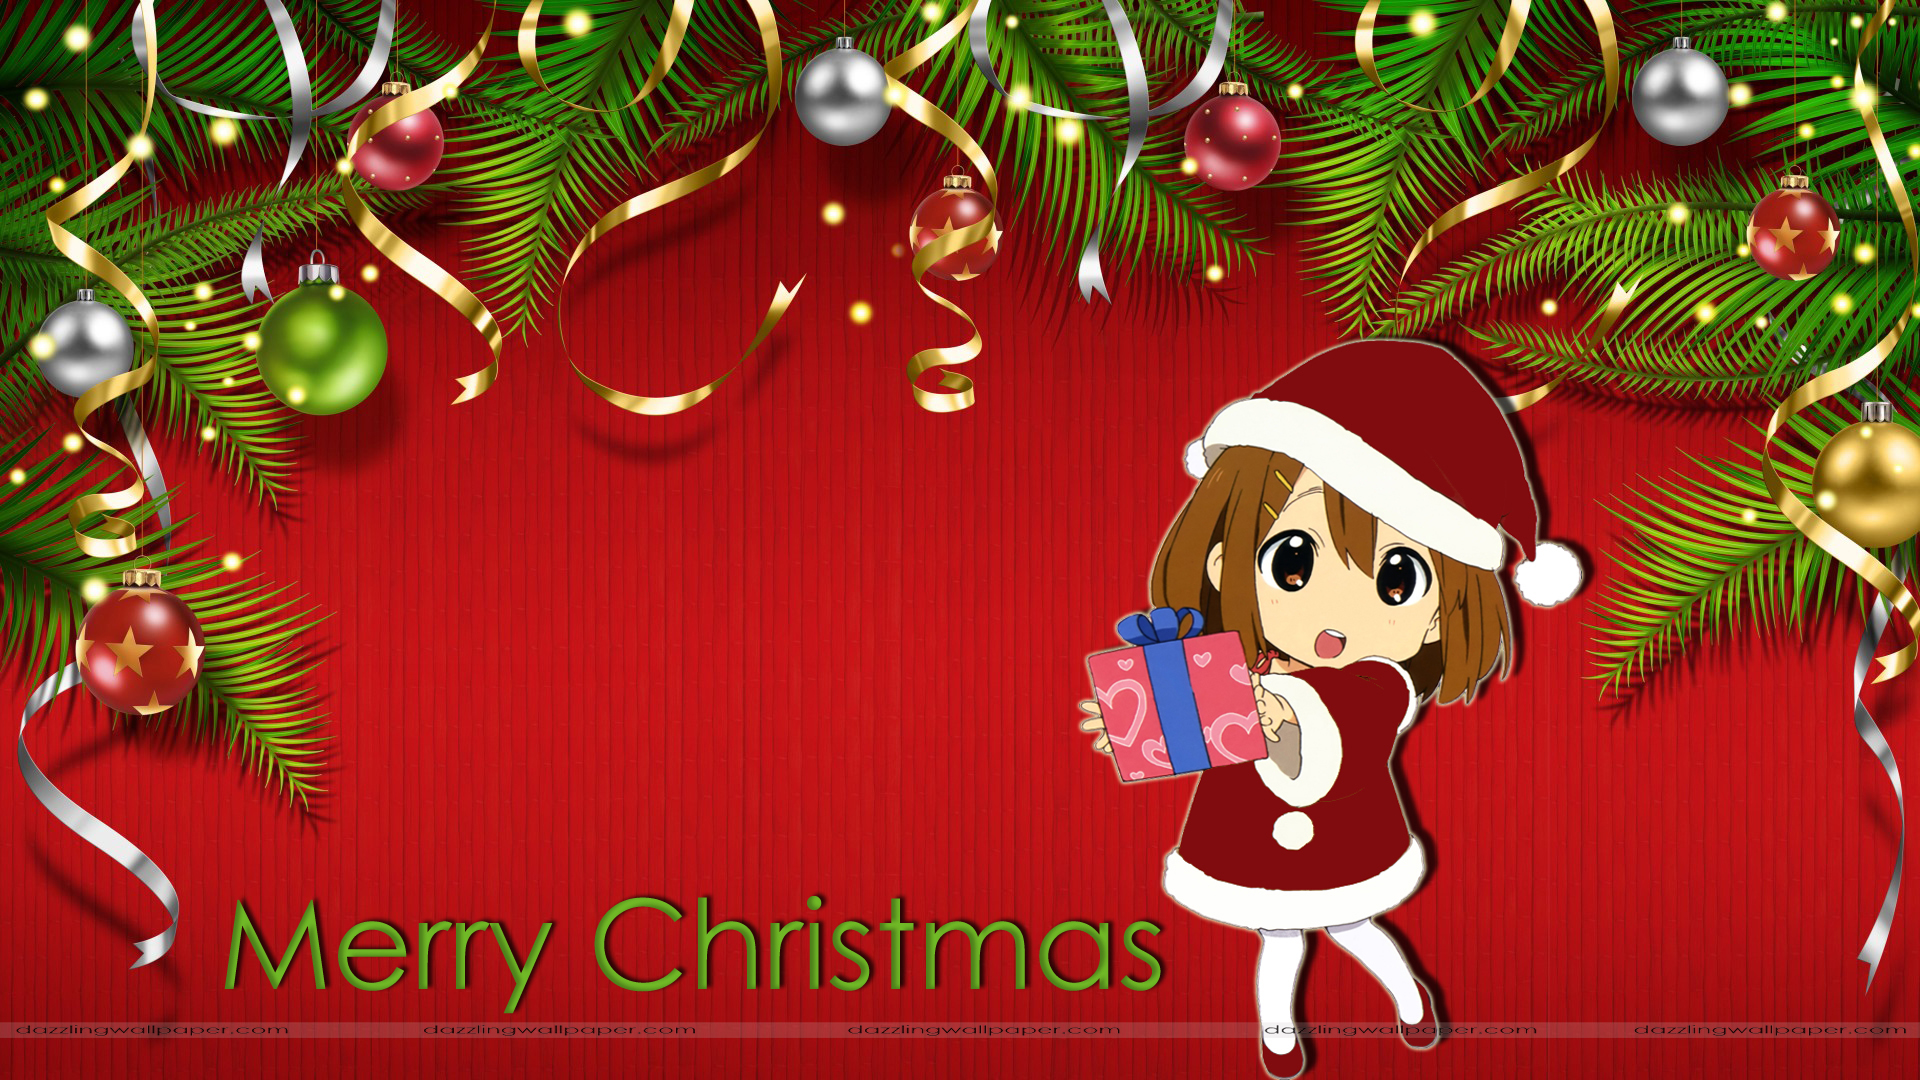 download merry christmas cute wallpaper gallery